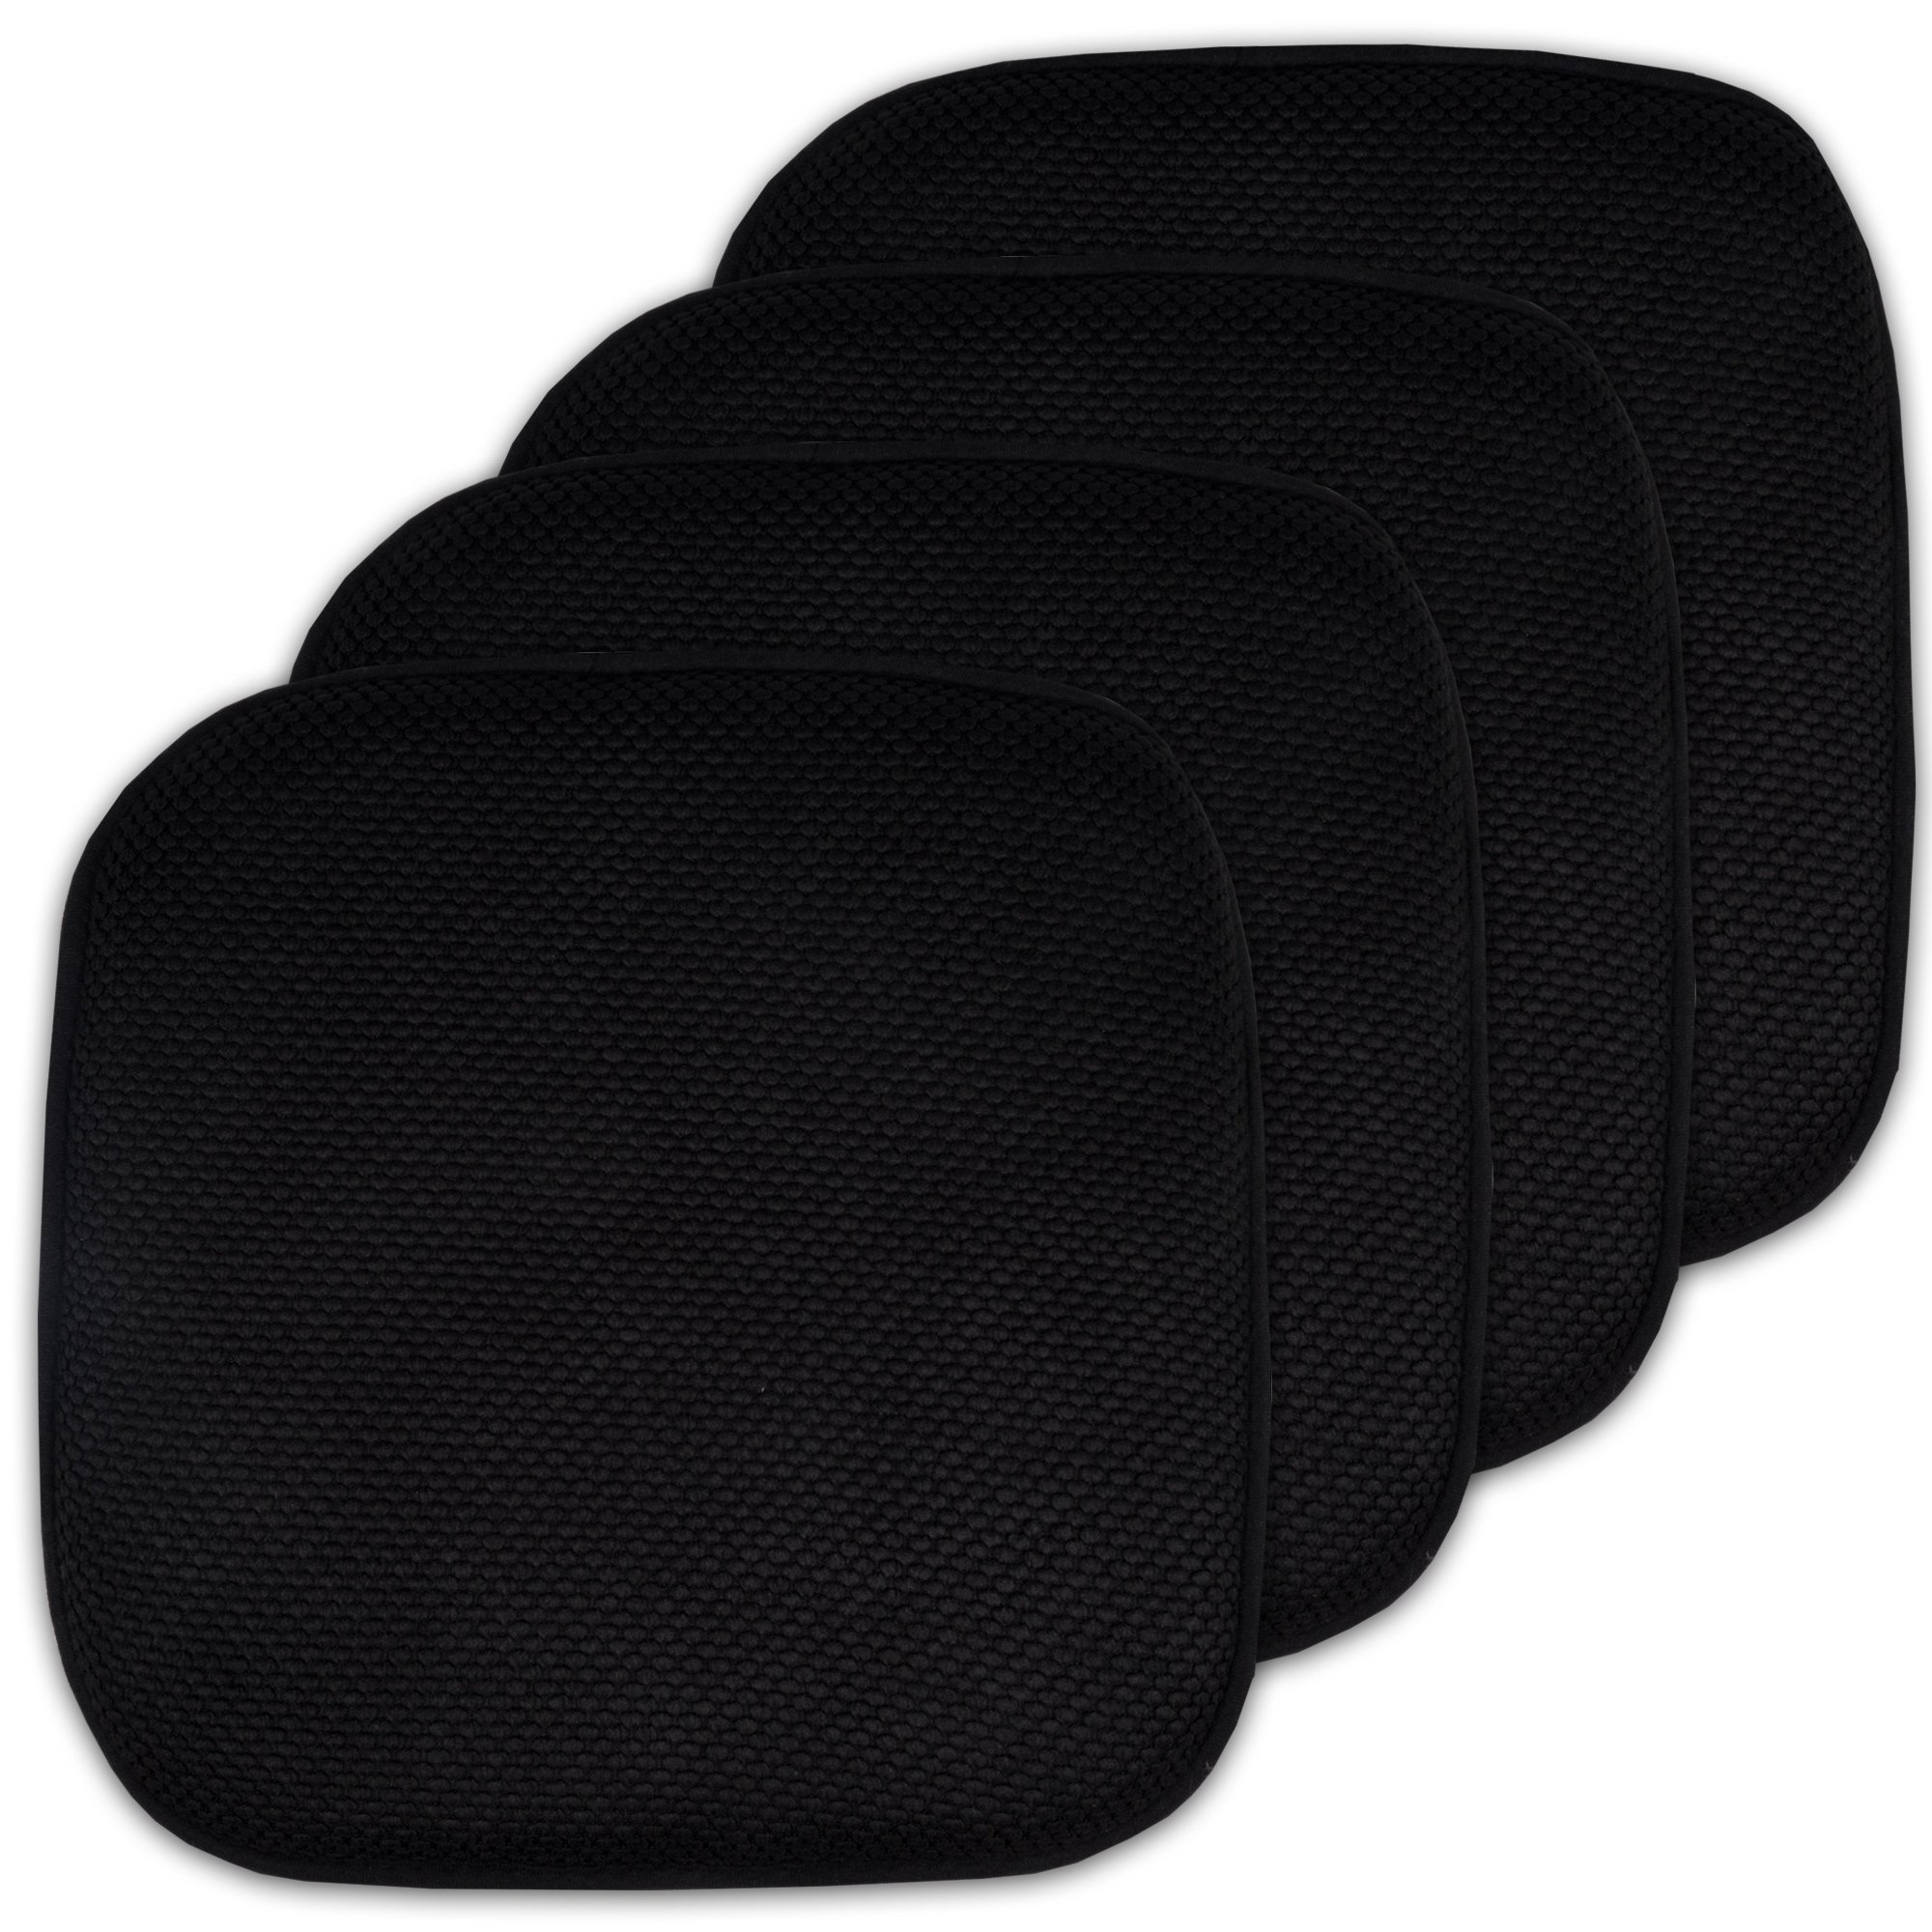 4 Pack Memory Foam Honeycomb Nonslip Back 16'' x16'' Chair/Seat Cushion Pad by Sweet Home Collection